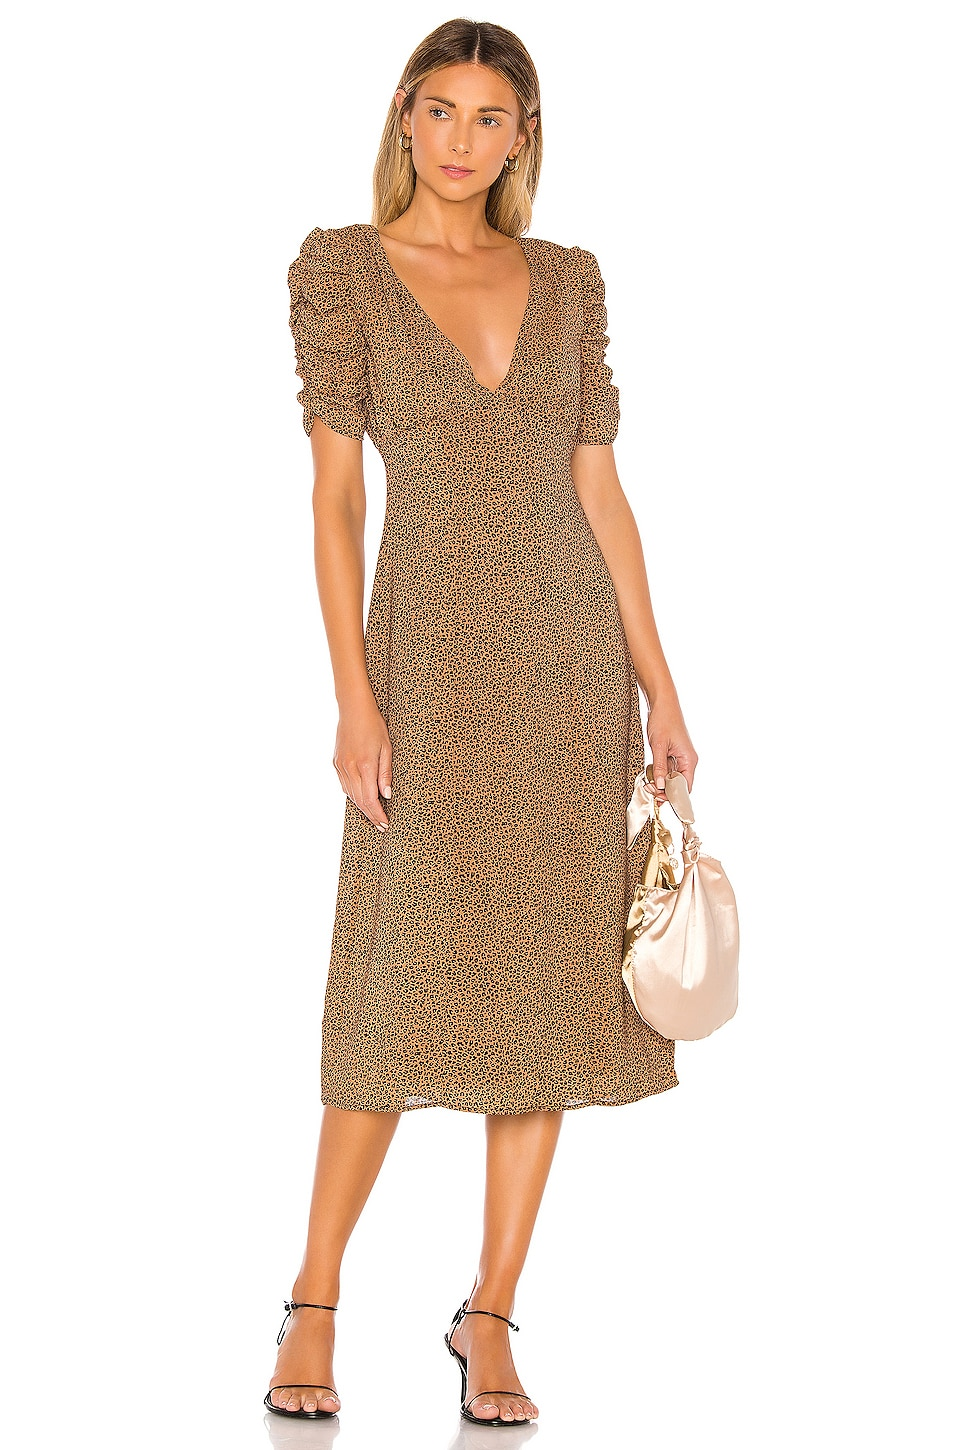 MAJORELLE Tamra Midi Dress in Tan Leopard